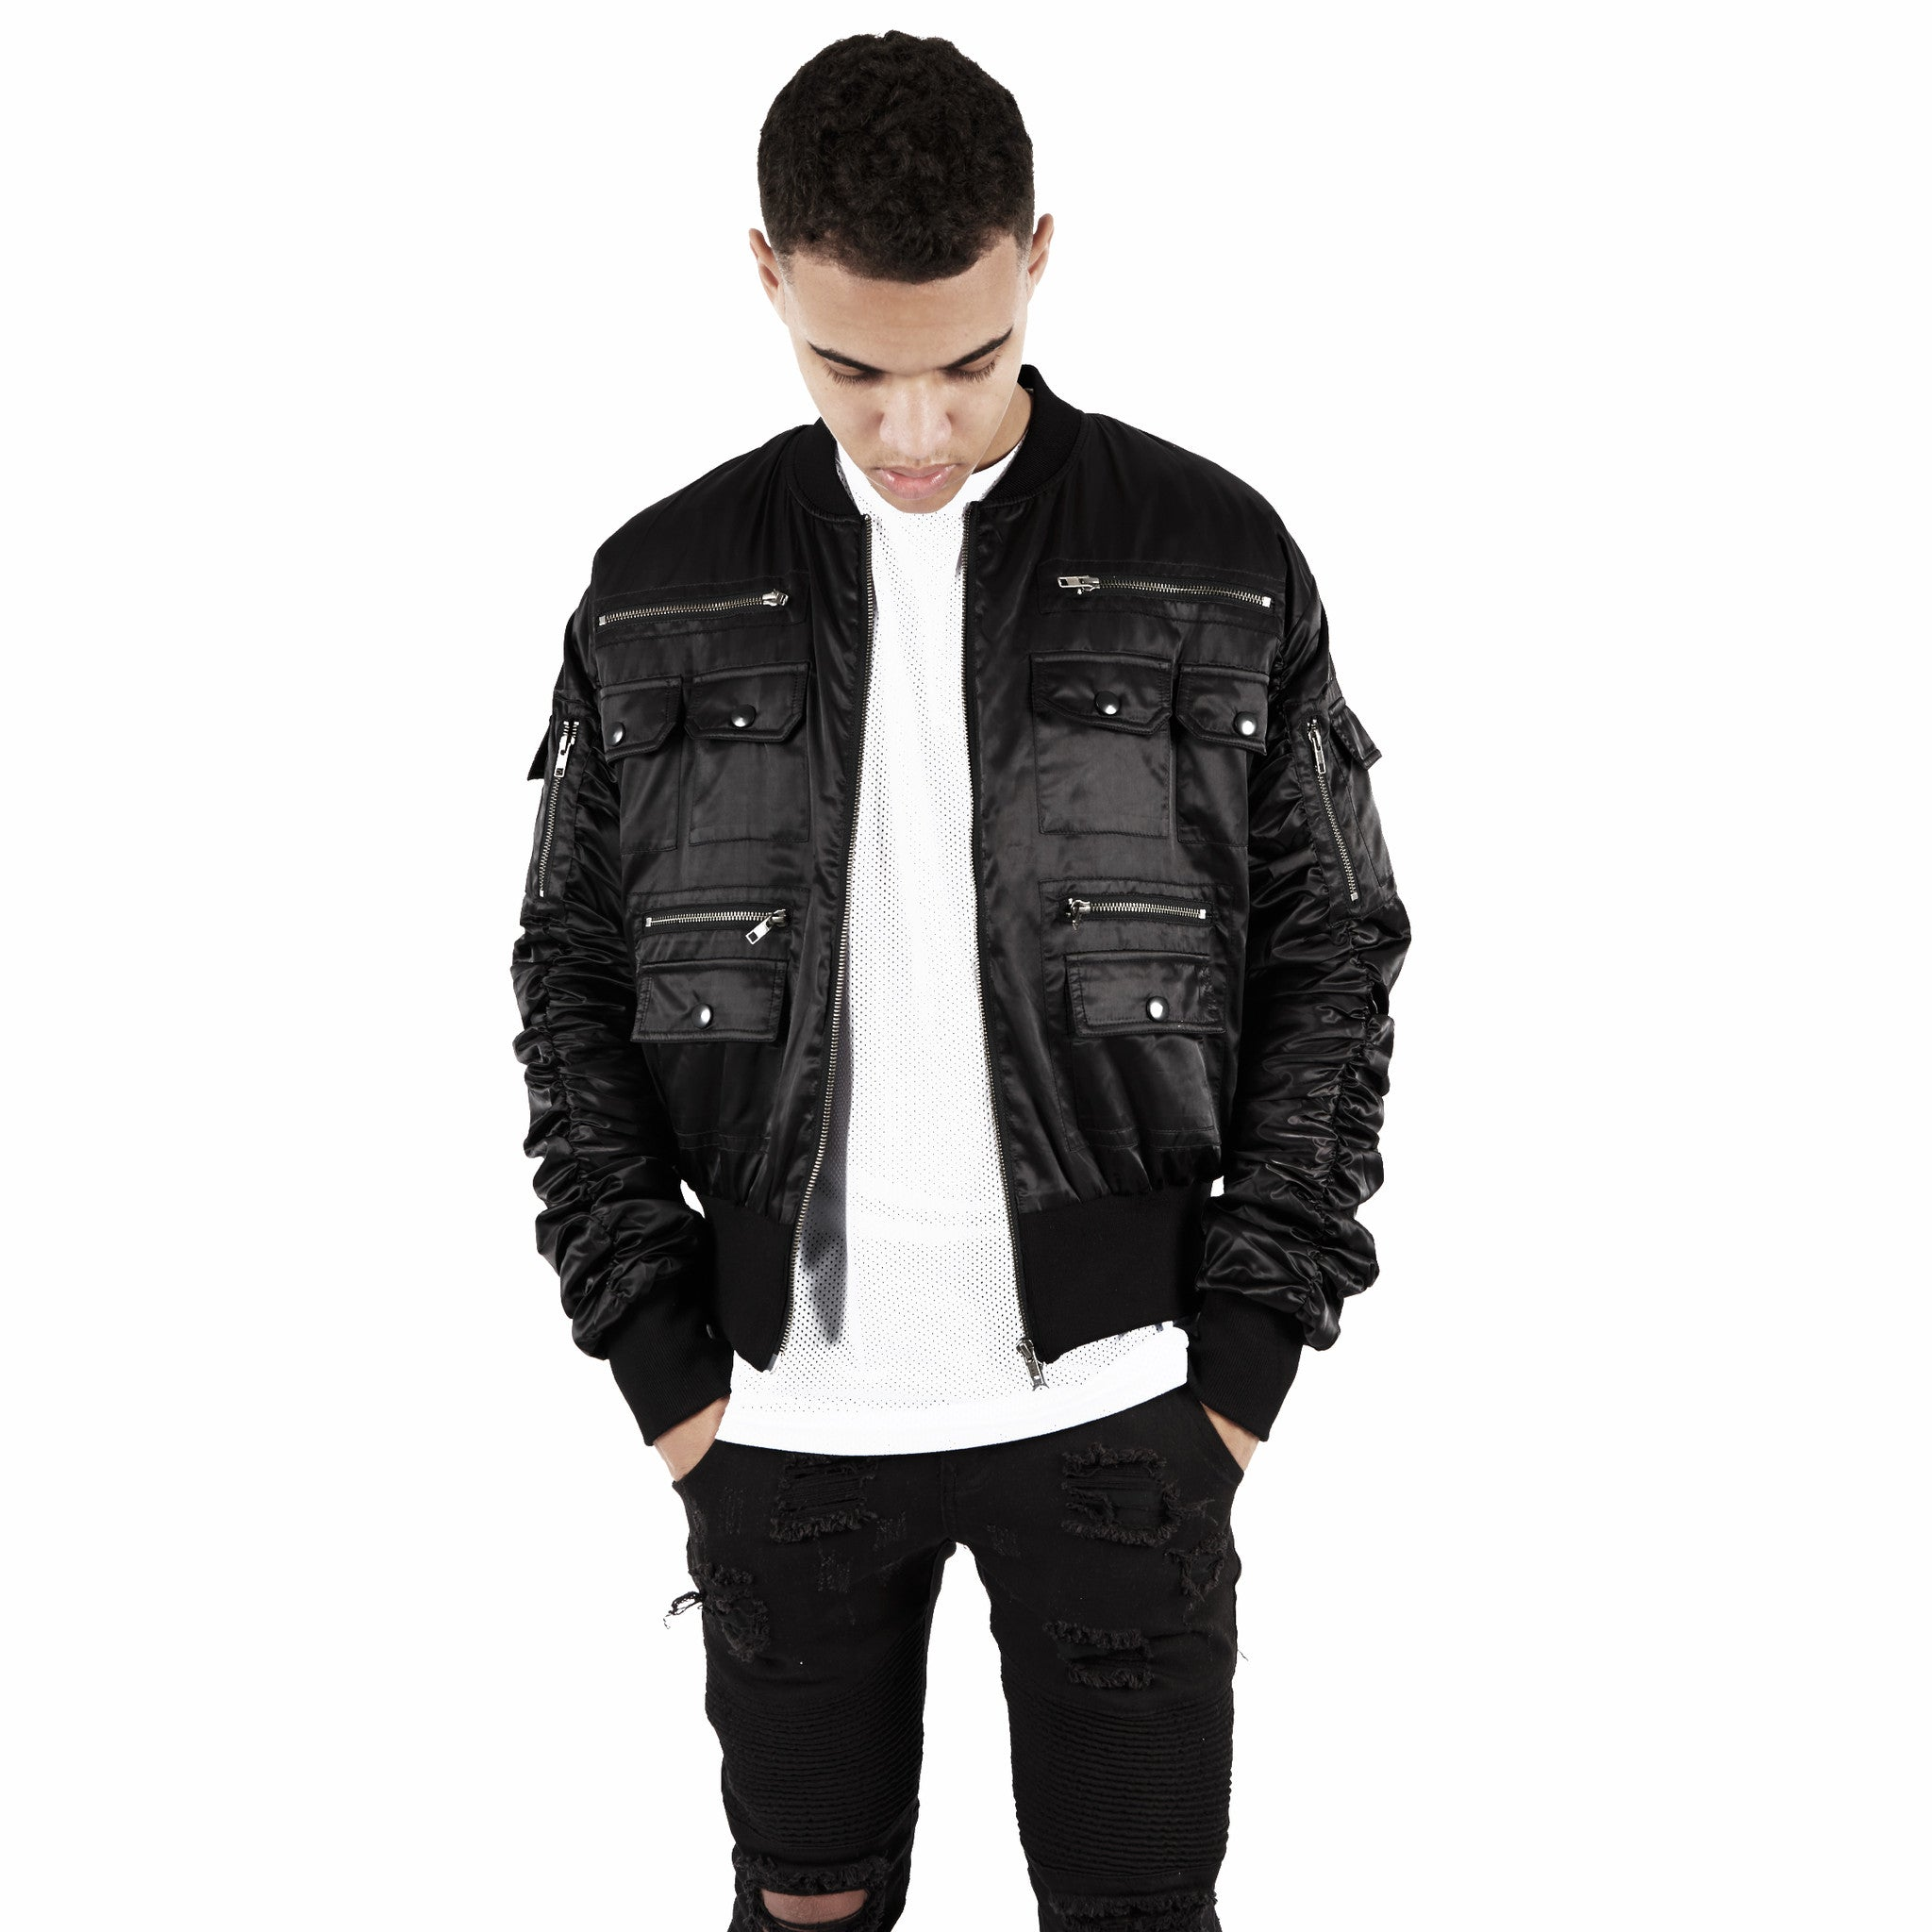 JK263 Exile Tactical Bomber Jacket - Black - underated london - underatedco - 5